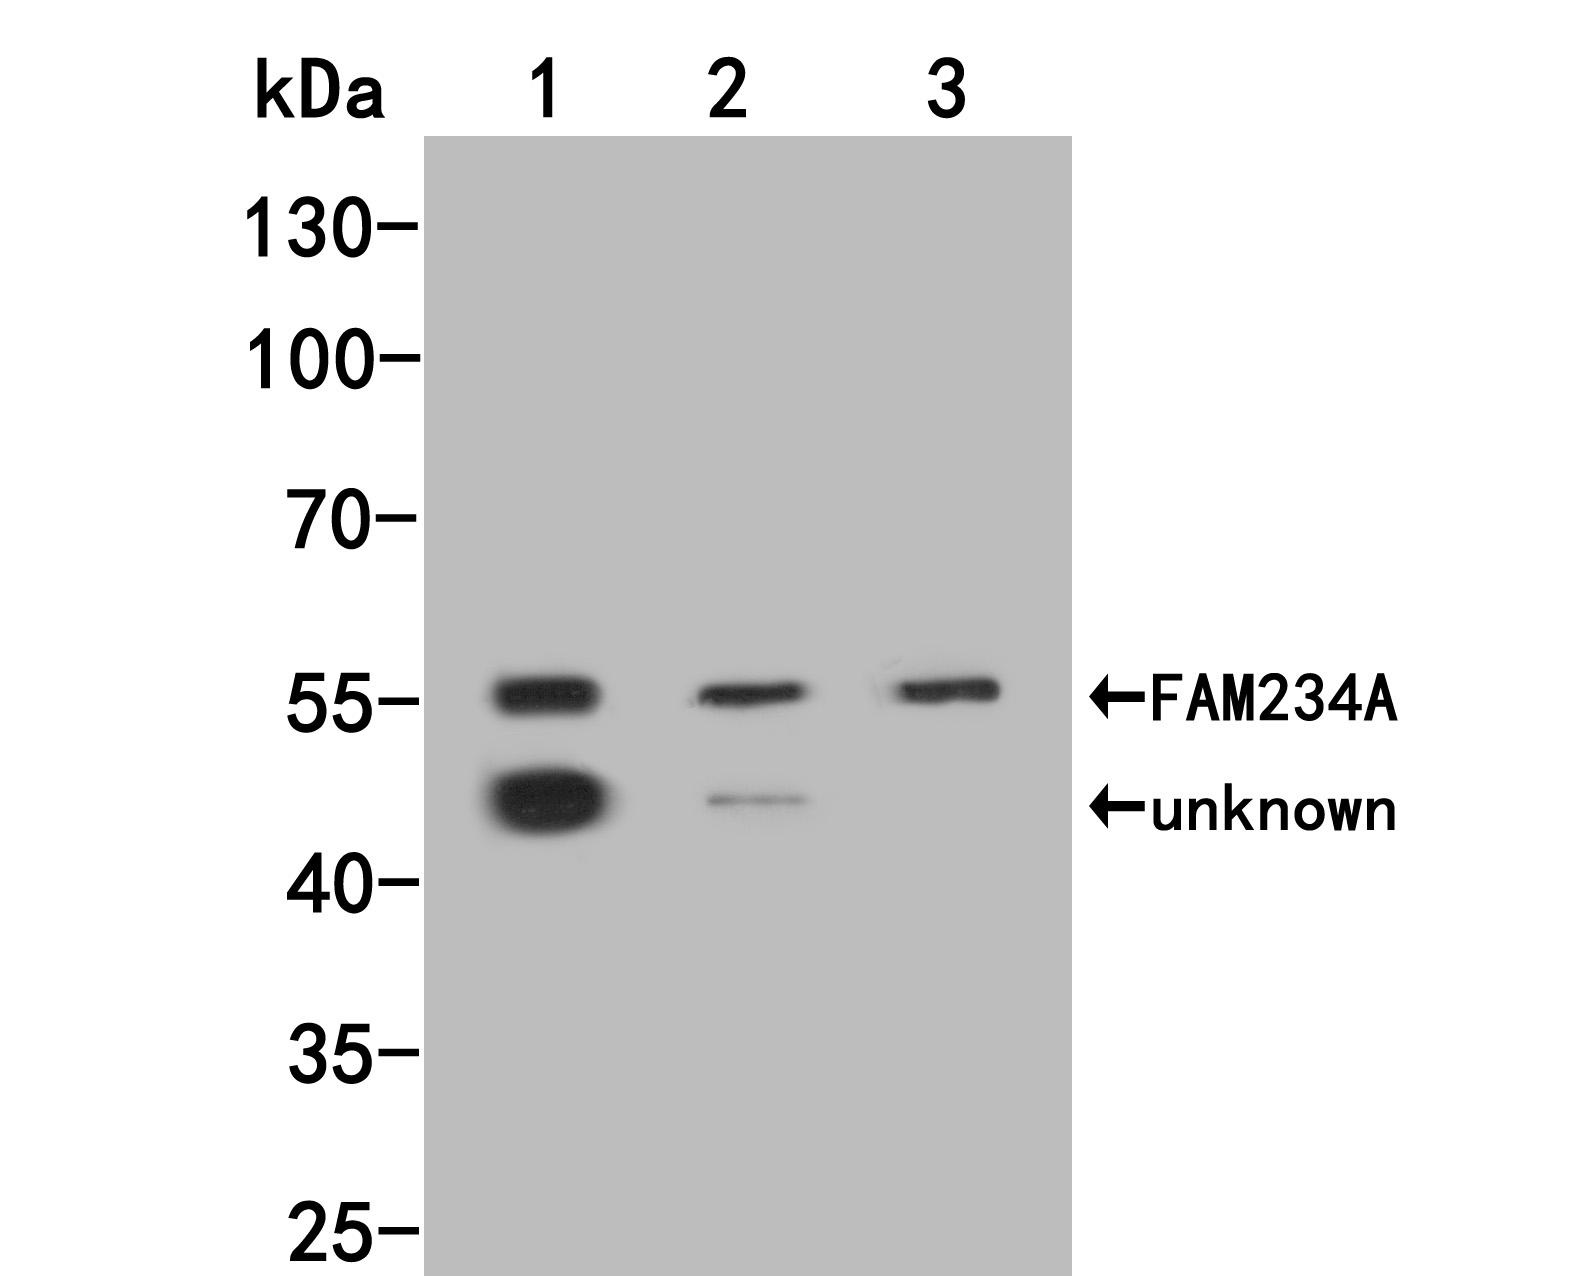 Western blot analysis of FAM234A on different lysates. Proteins were transferred to a PVDF membrane and blocked with 5% BSA in PBS for 1 hour at room temperature. The primary antibody (M1010-1, 1/500) was used in 5% BSA at room temperature for 2 hours. Goat Anti-Mouse IgG - HRP Secondary Antibody (HA1006) at 1:5,000 dilution was used for 1 hour at room temperature.<br /> Positive control: <br /> Lane 1: MCF-7 cell lysate<br /> Lane 2: Siha cell lysate<br /> Lane 3: SHSY5Y cell lysate